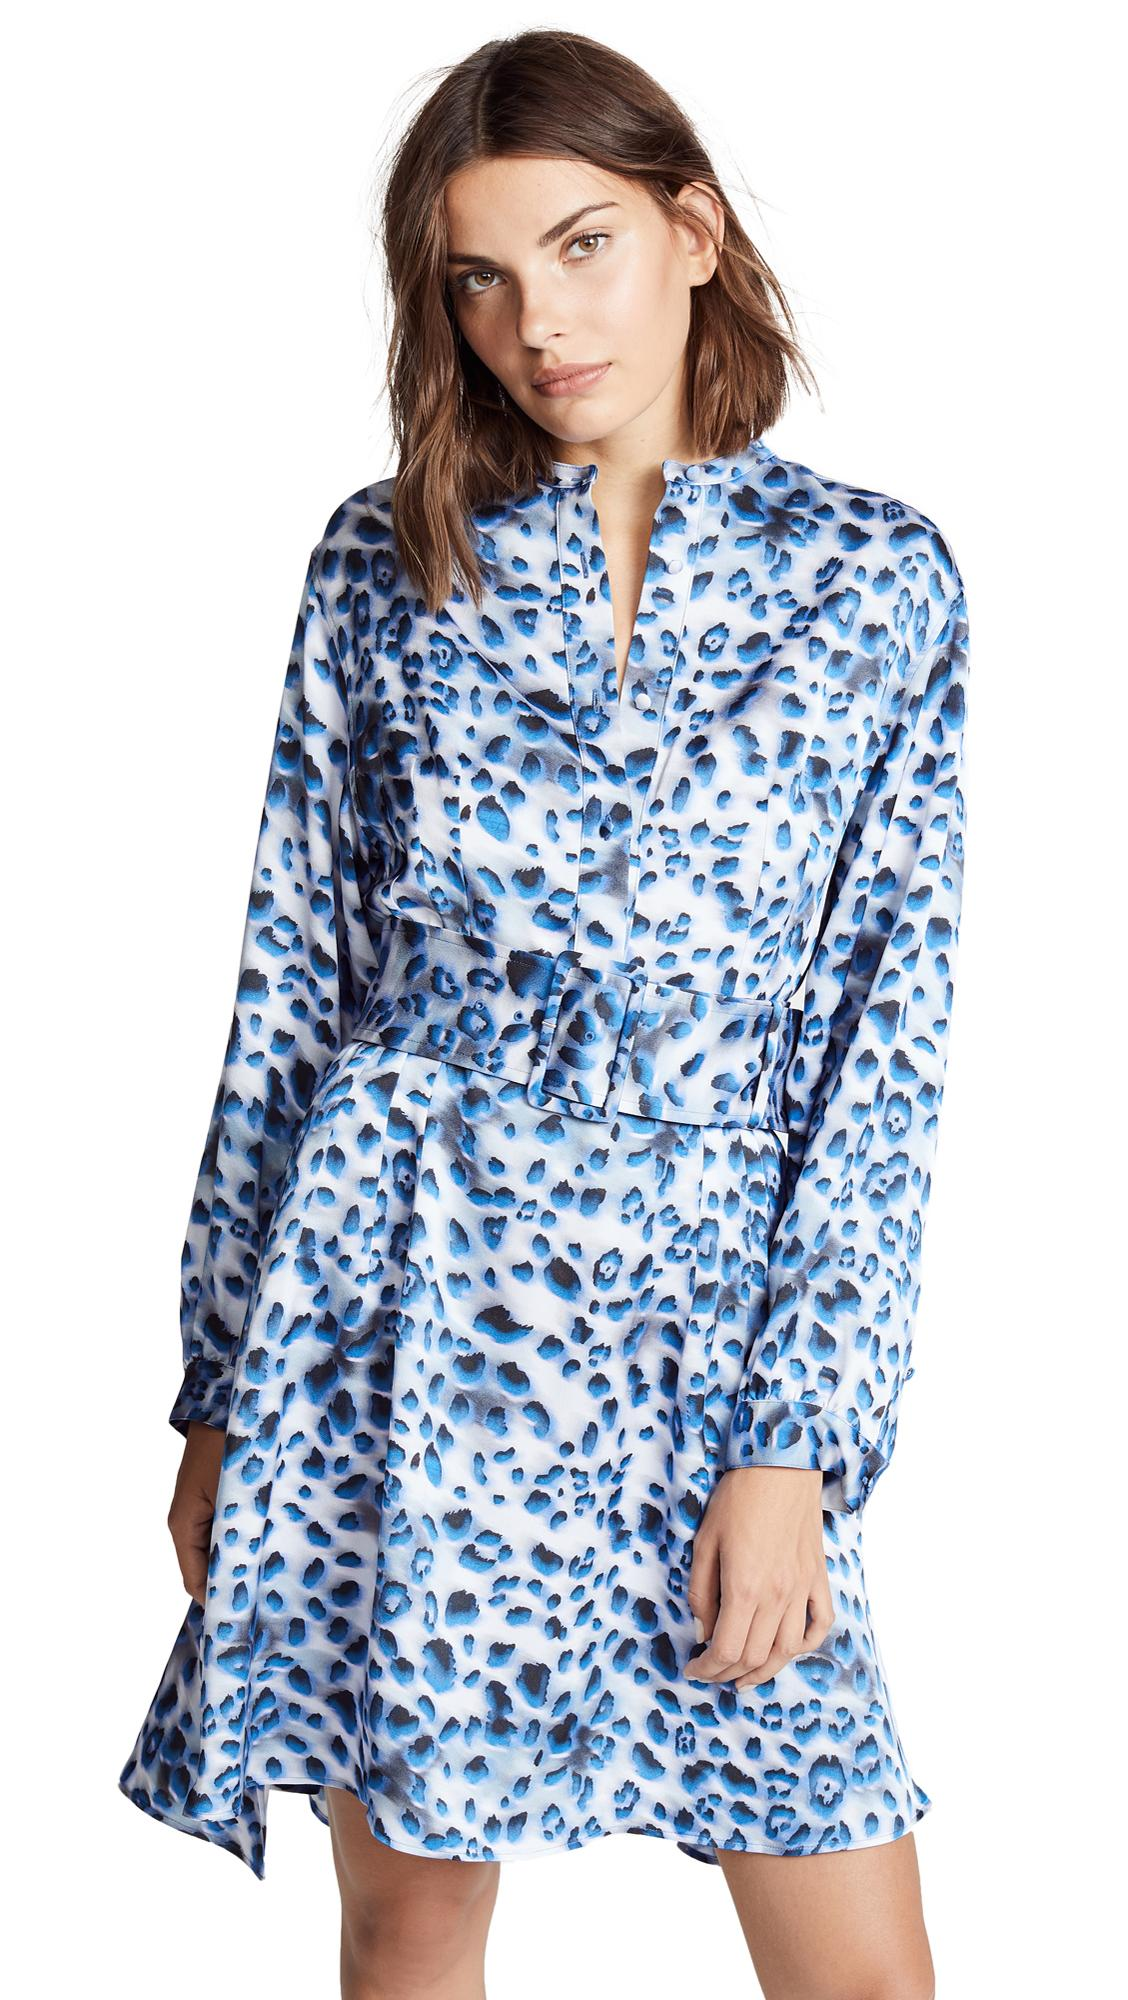 113bcc1b4e1 KochÉ Belted Shirt Dress In Blue Leopard